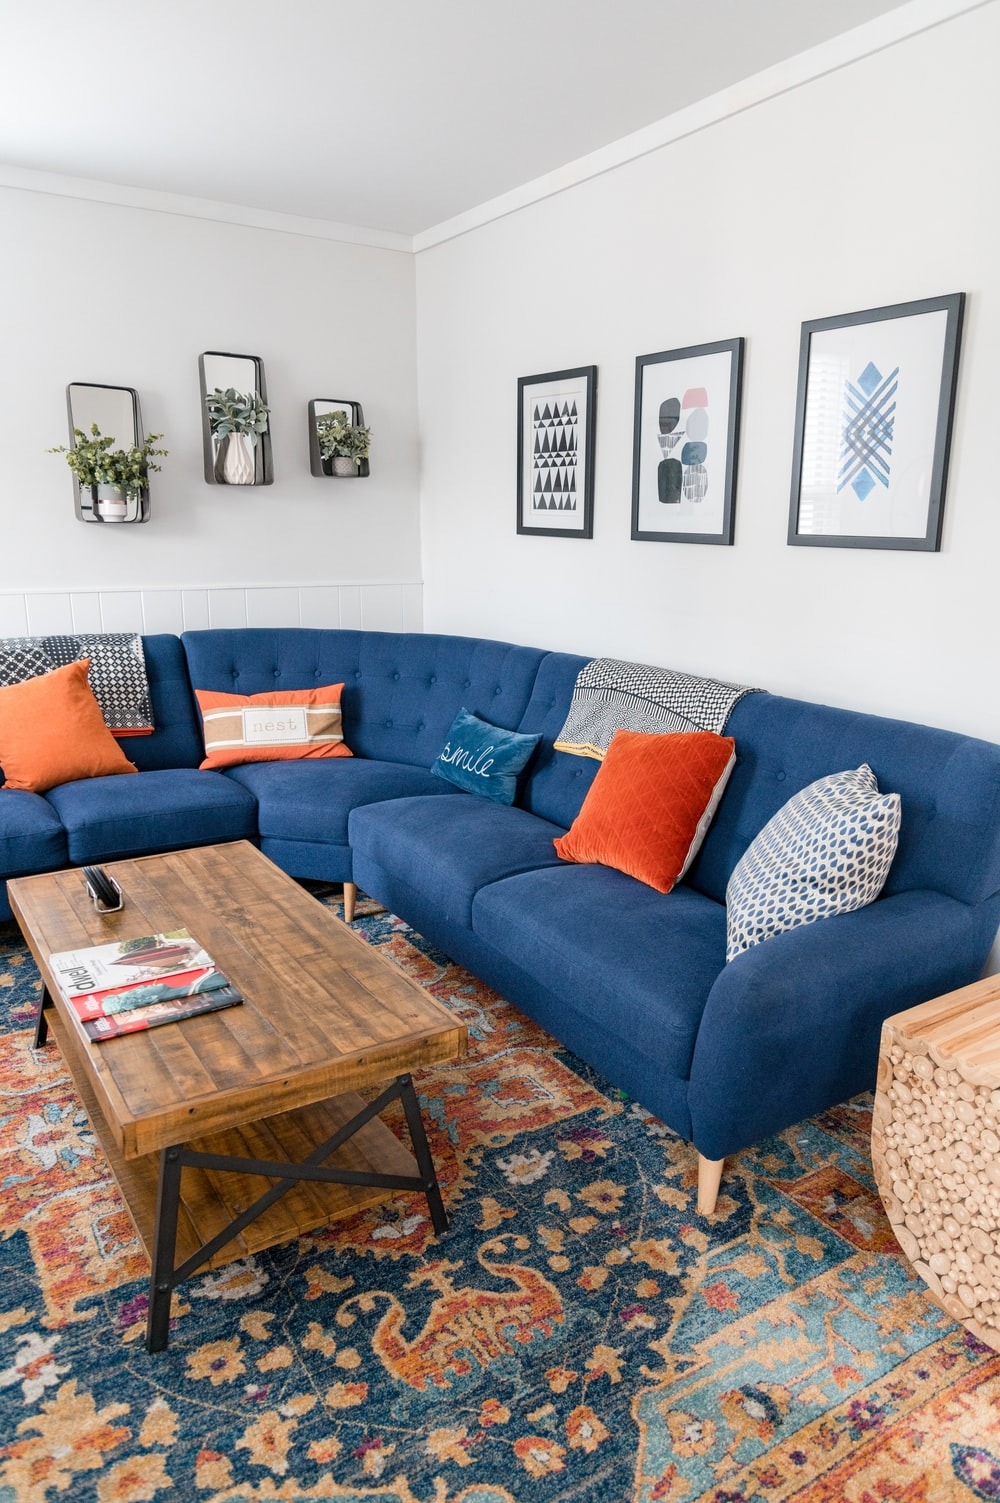 Blue And Brown Couch With Throw Pillows Photo Free Couch Image On Unsplash